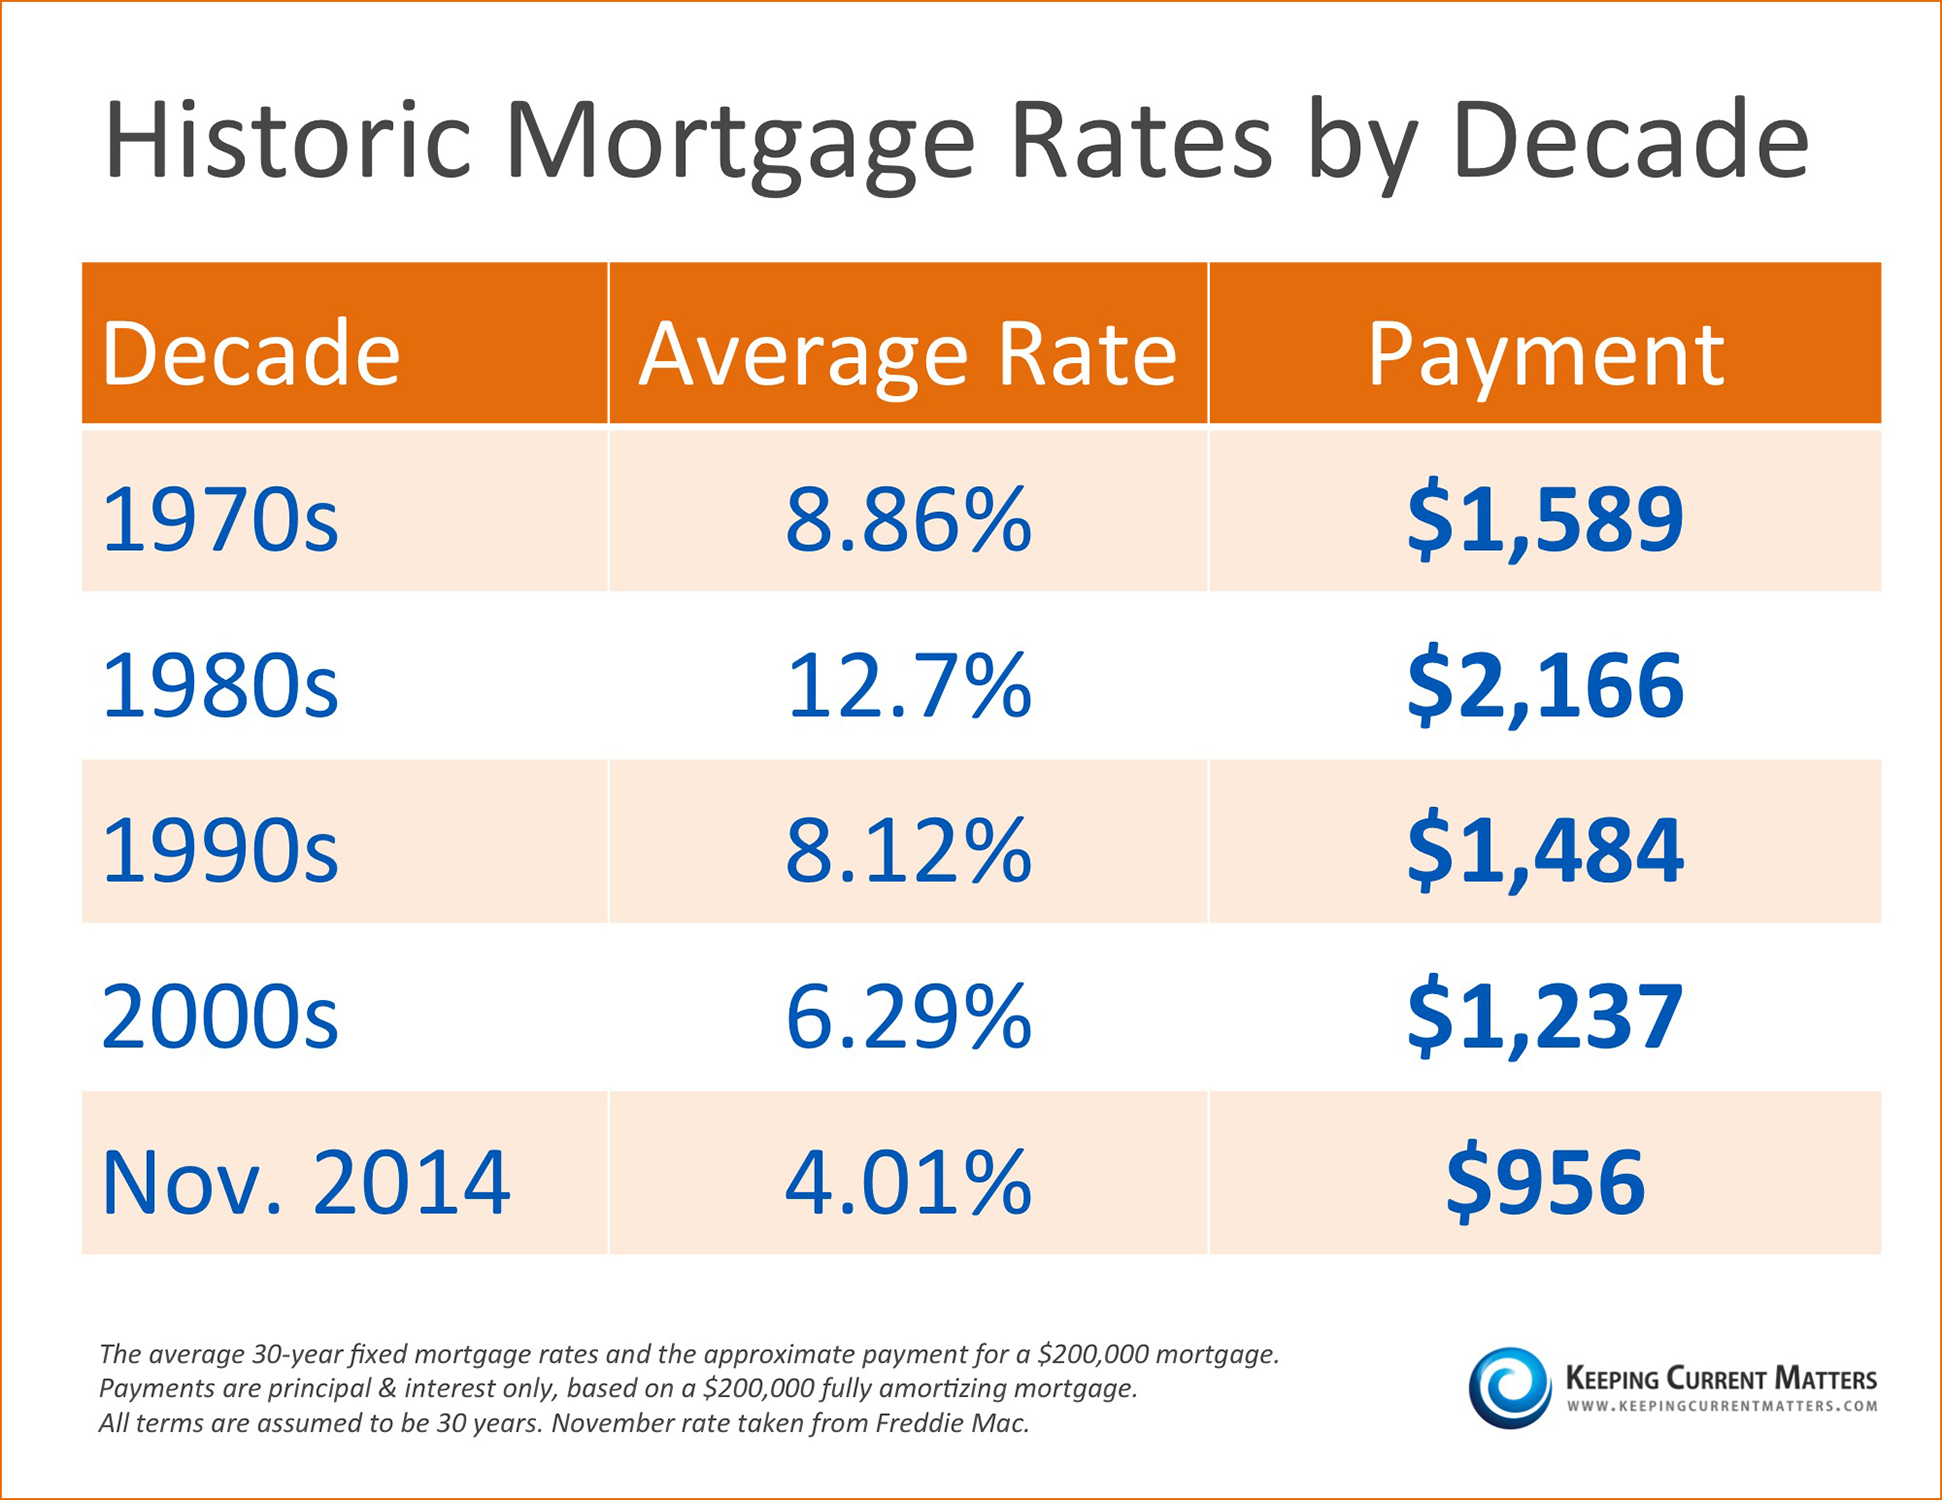 Historic Mortgage Rates by Decade [INFOGRAPHIC]   Keeping Current Matters